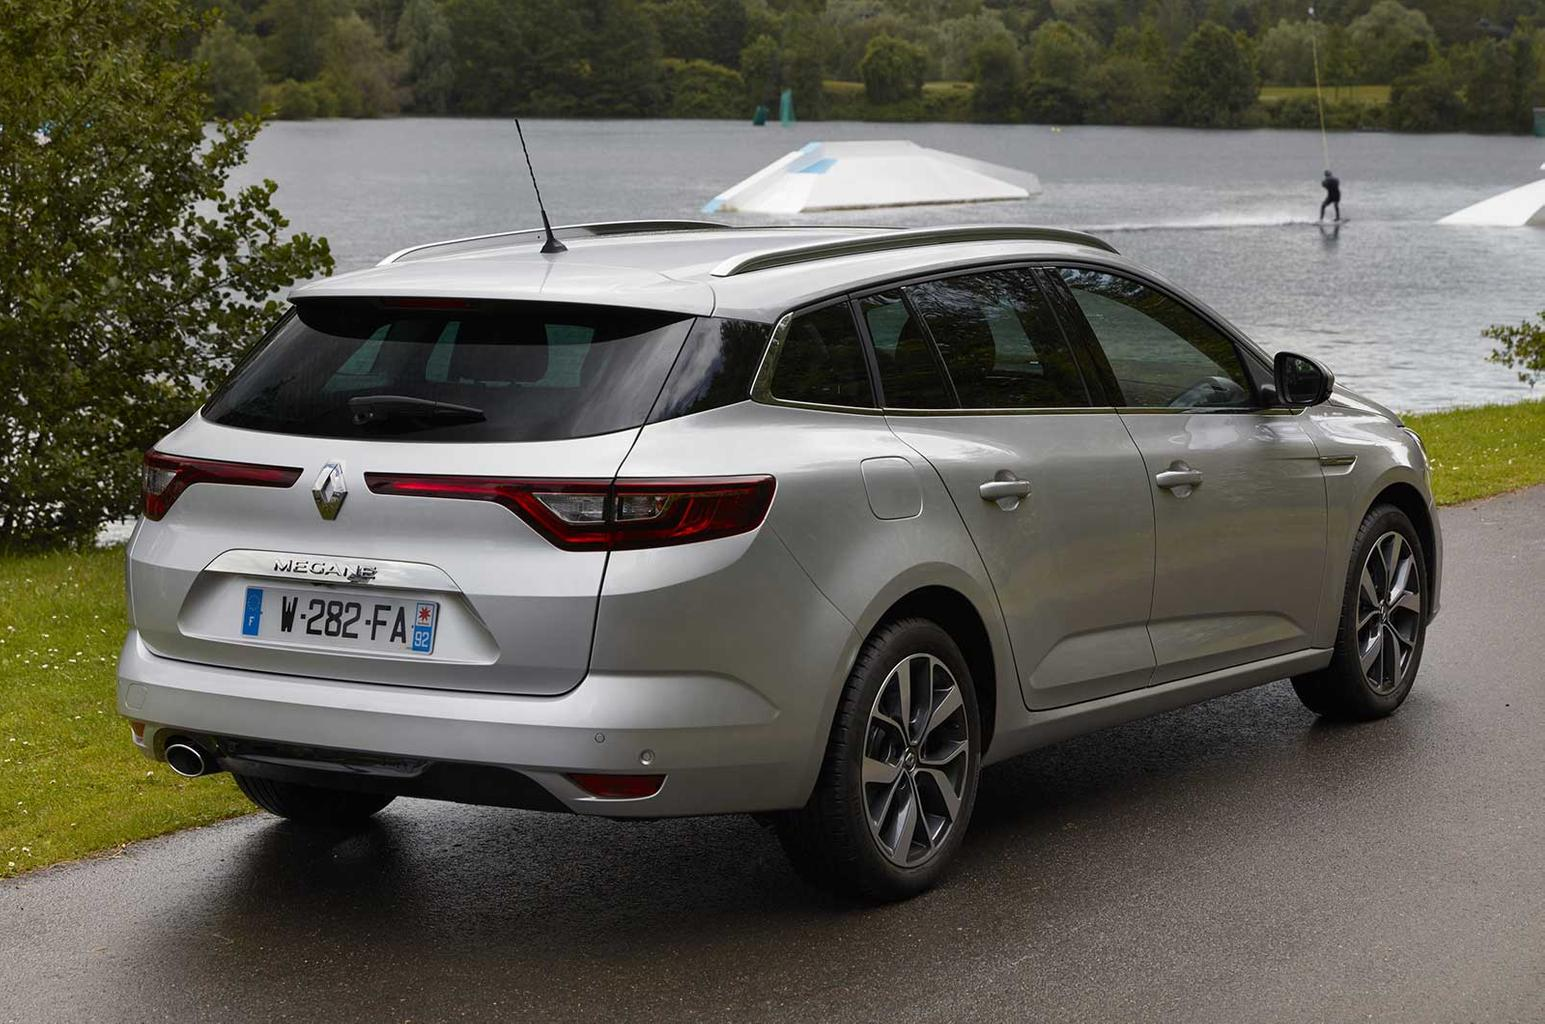 2016 Renault Megane Sport Tourer to cost from £18,550